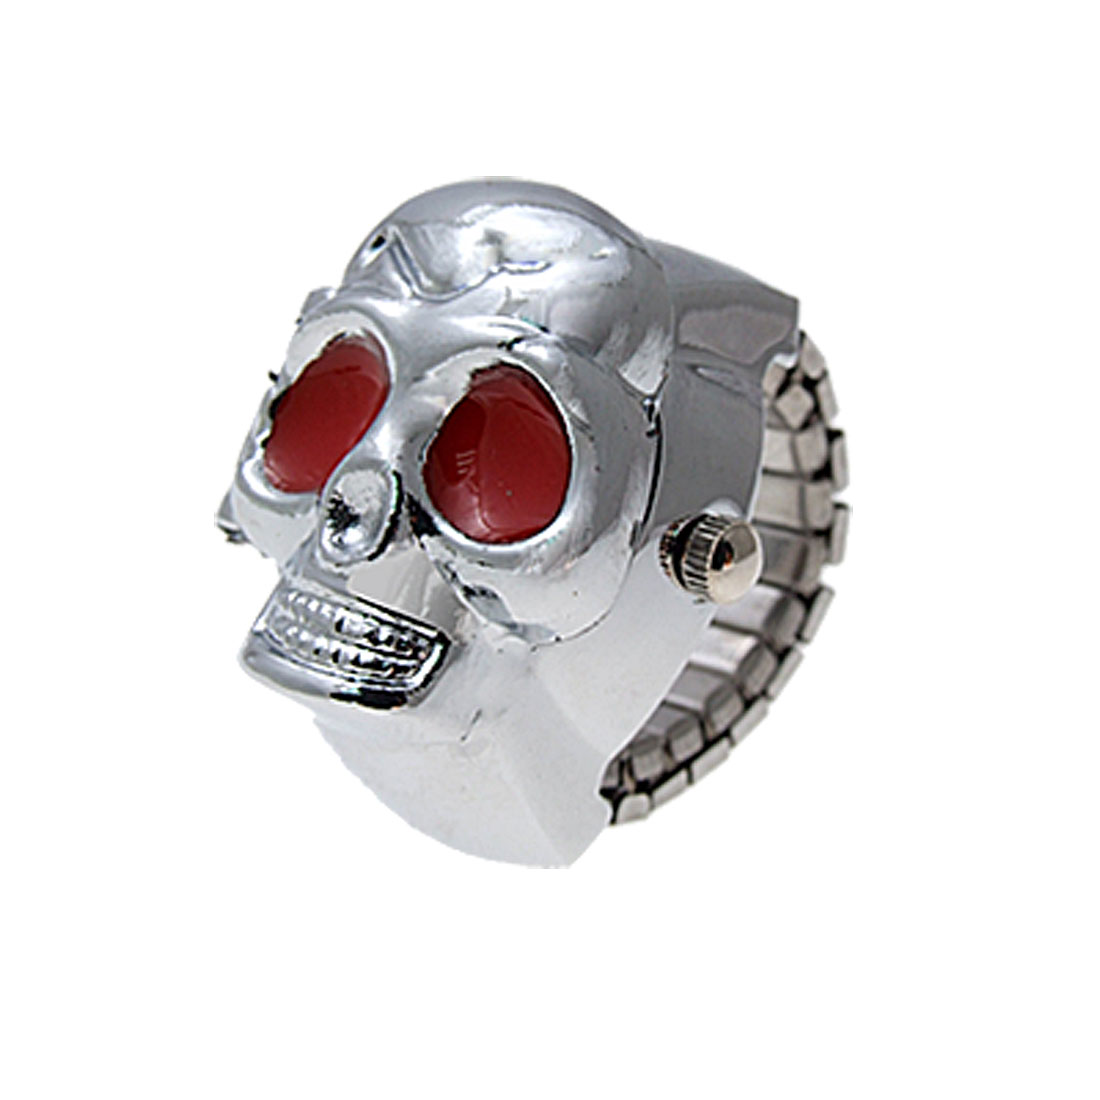 Arab Num Silver Tone Skull Finger Ring Watch Stretch Band